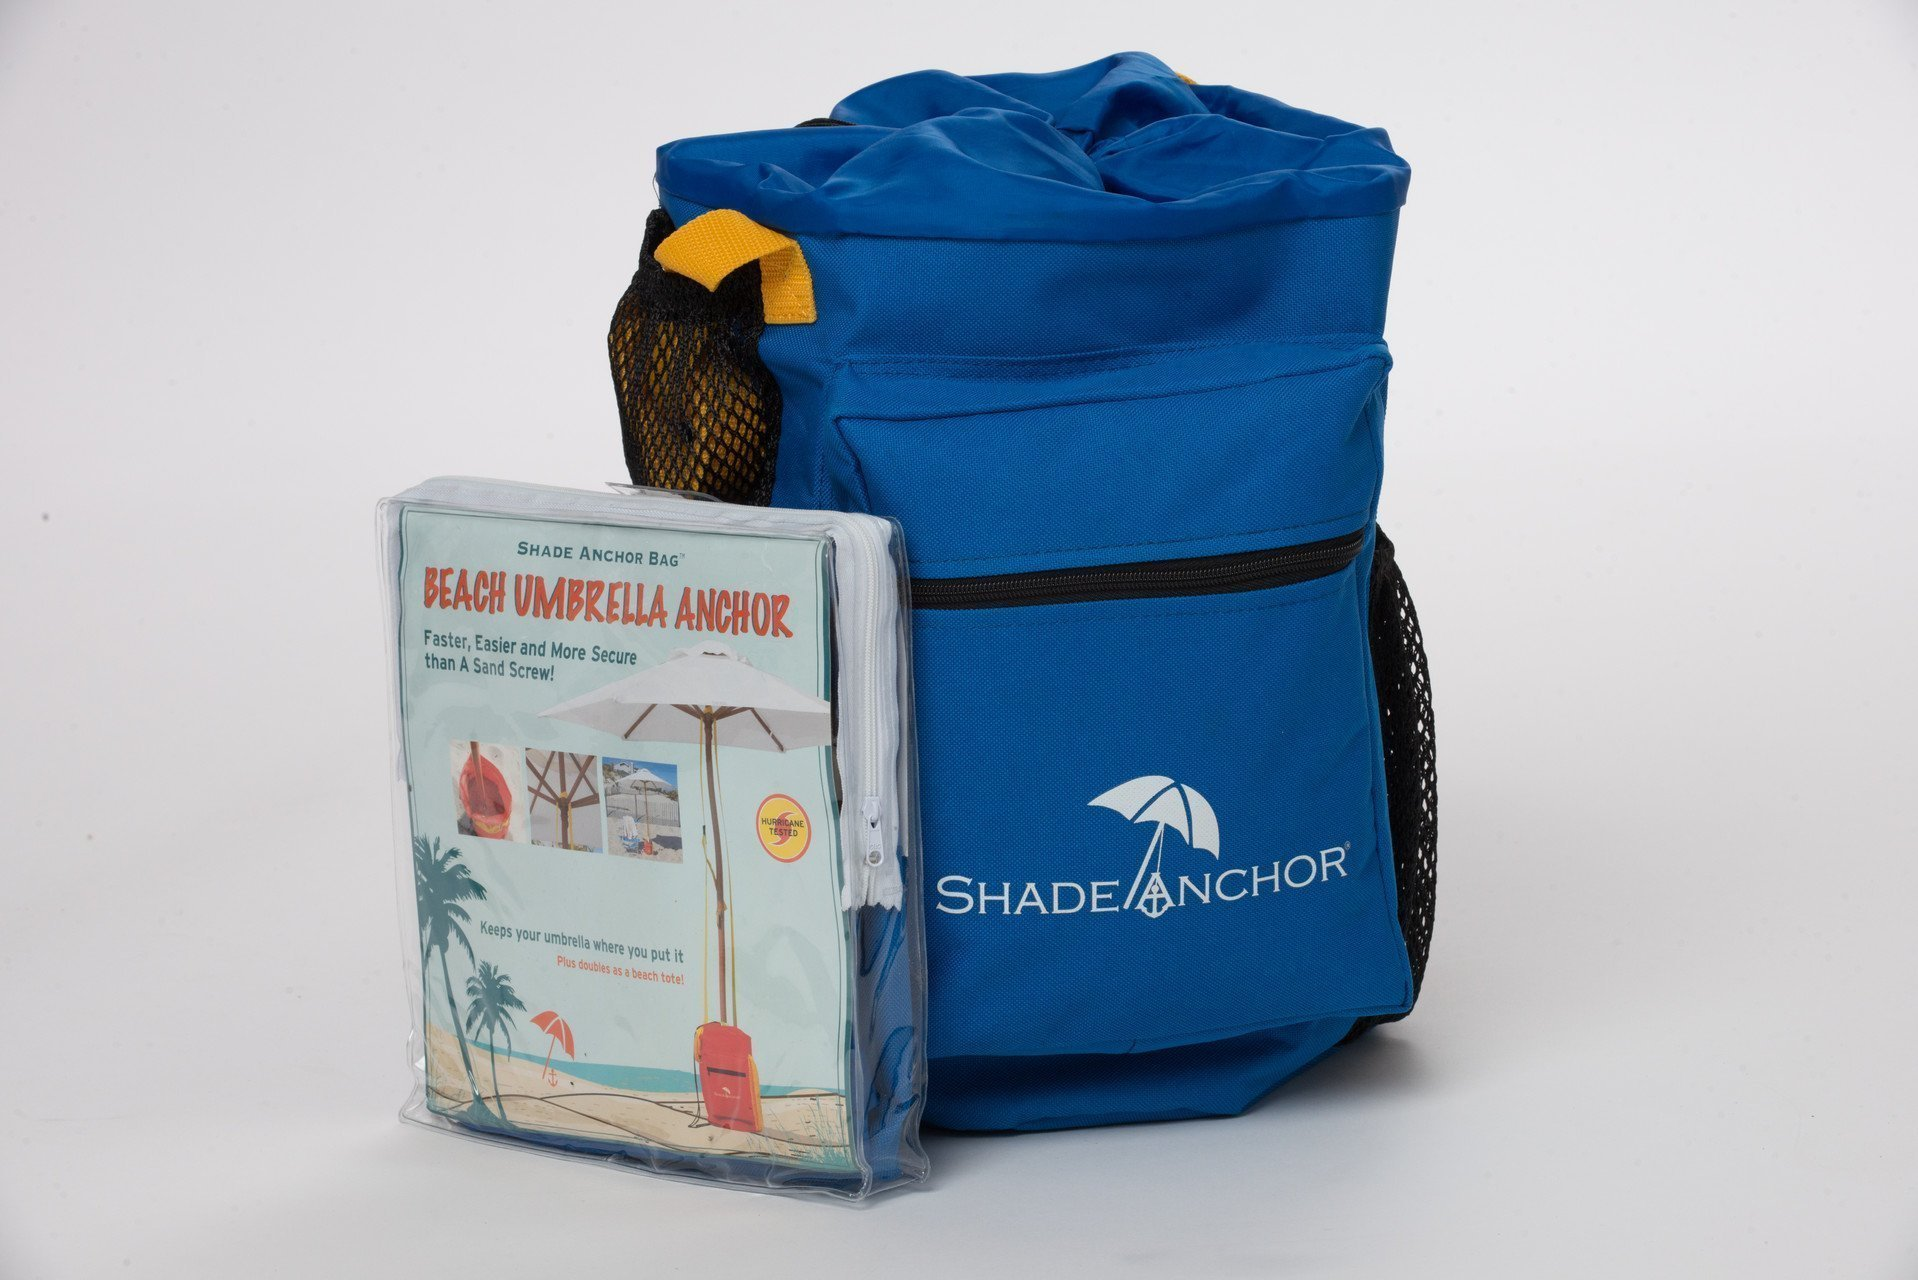 The Original Shade Anchor Bag Beach Umbrella Sand By Buoy Works With Any